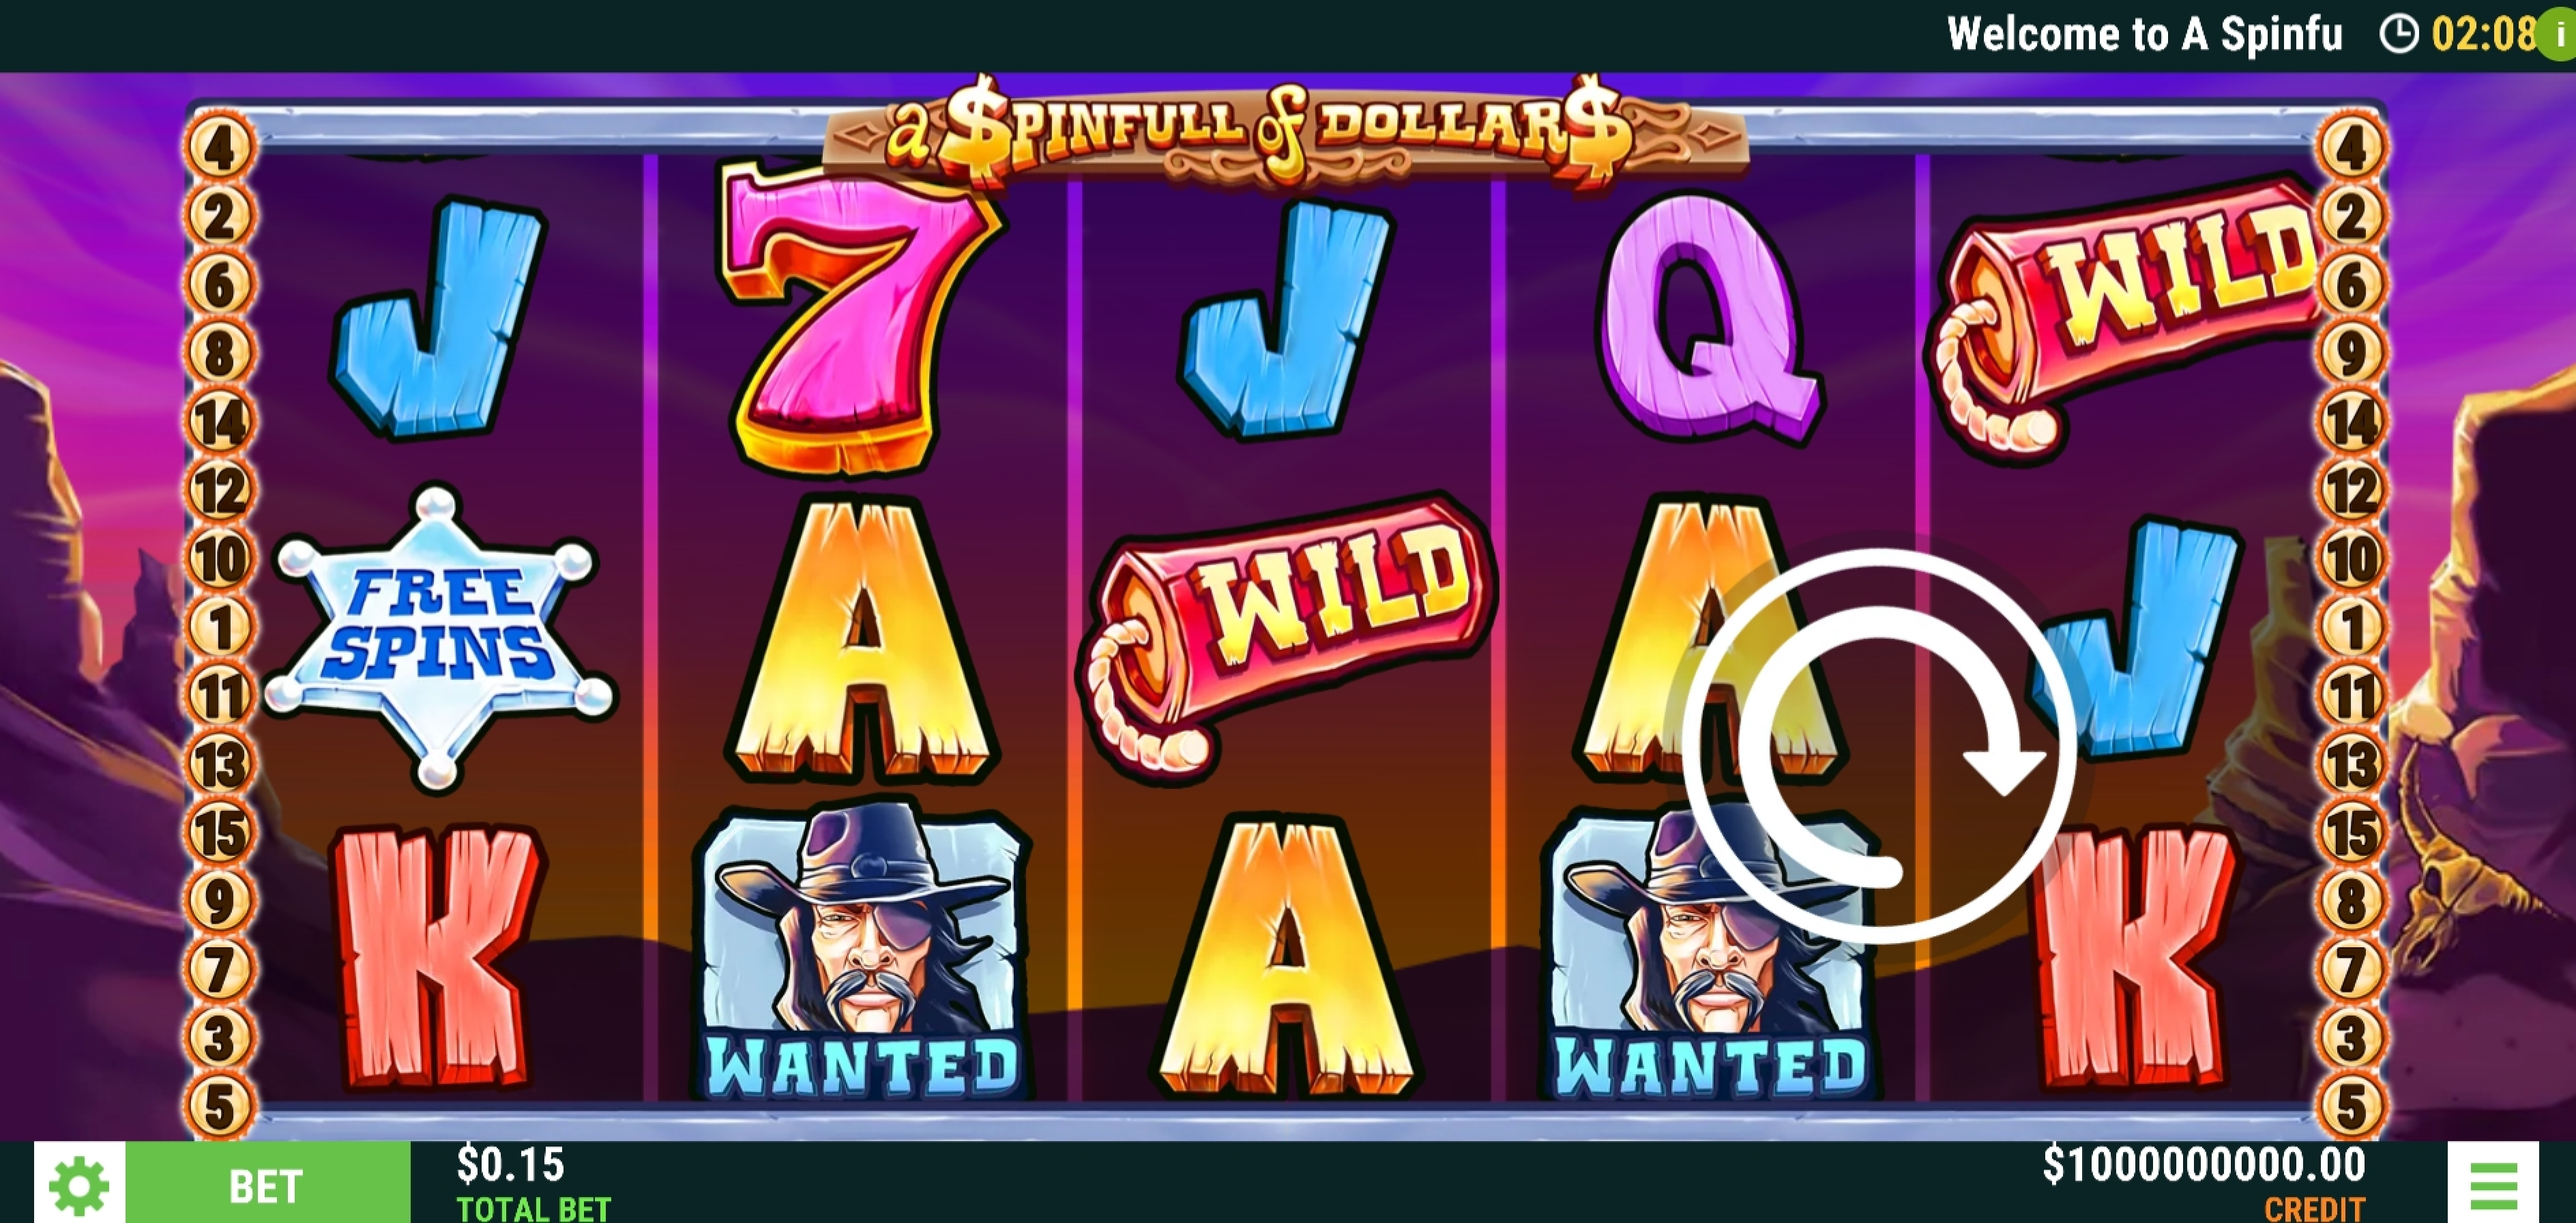 Reels in A Spinfull of Dollars Slot Game by Slot Factory